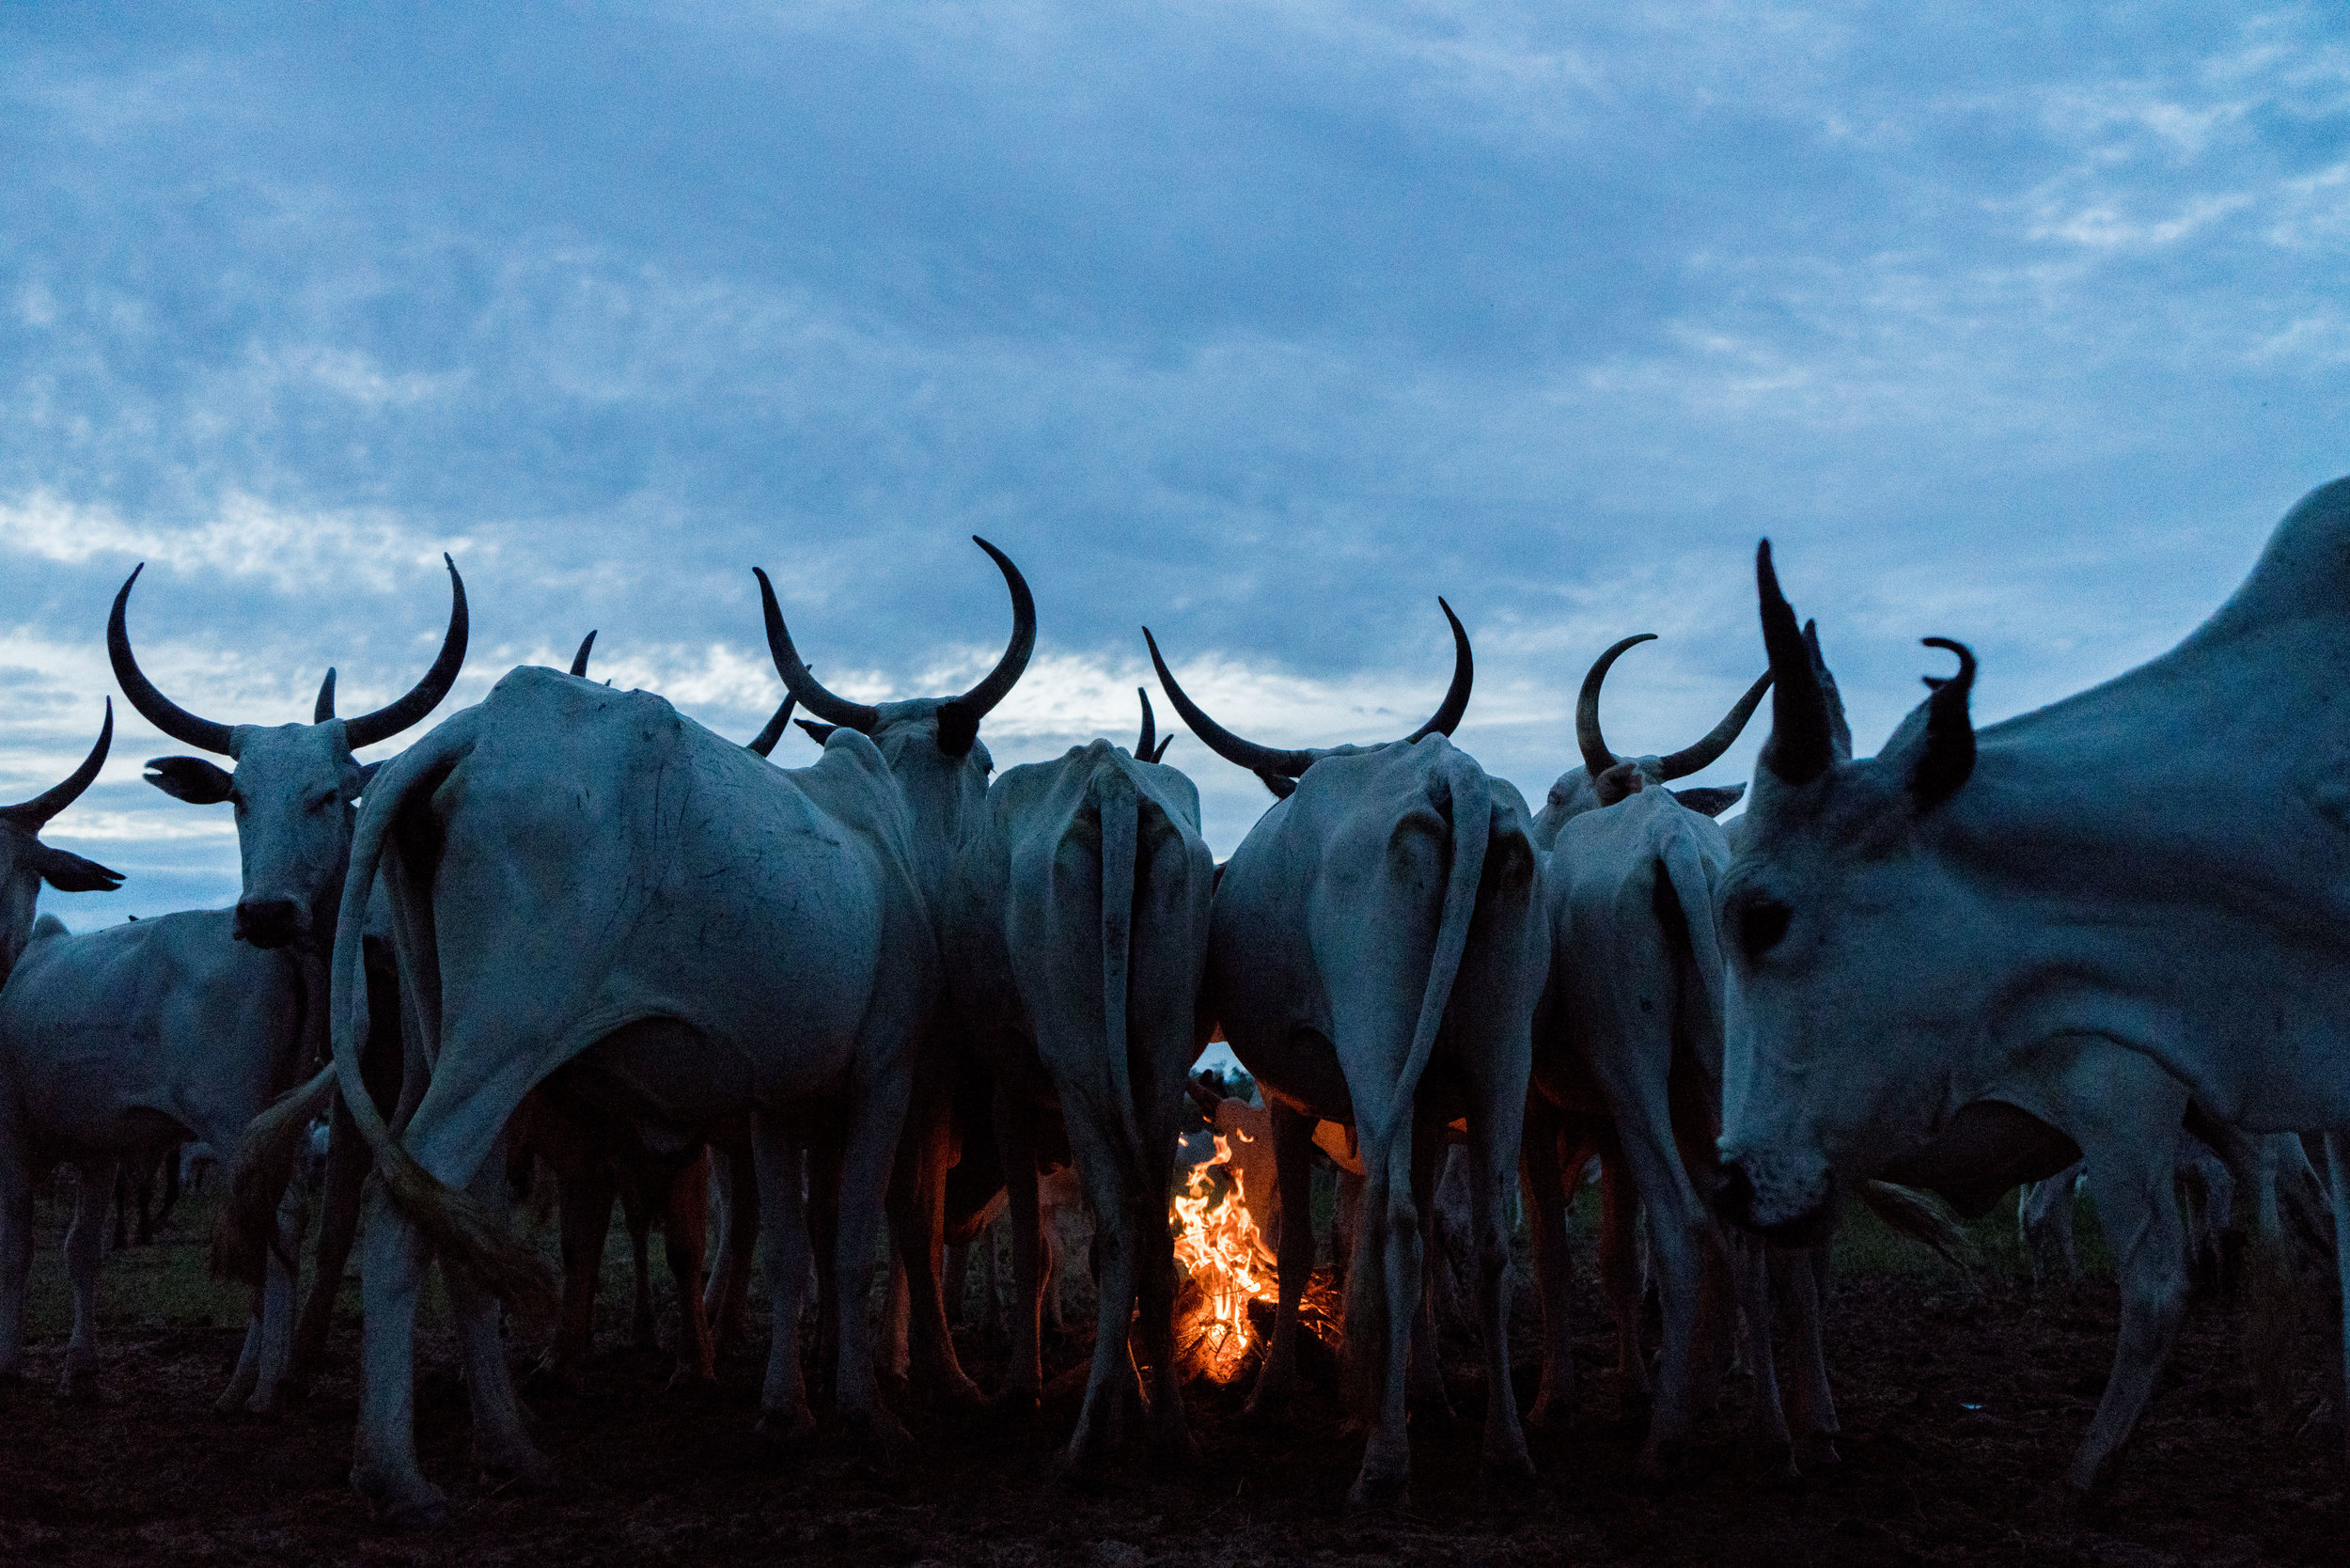 ADRIANE OHANESIAN  www.adrianeohanesian.com  |  @adrianeohanesian   As the sun sets and the cows return to the camp Fulani herders build fires in Feji, Nigeria, on August 30, 2018. In the first six months of this year, clashes between farmers and herders killed an estimated 1,300 people, six times the number who died in the war with the Islamist extremist group Boko Haram in the same period.